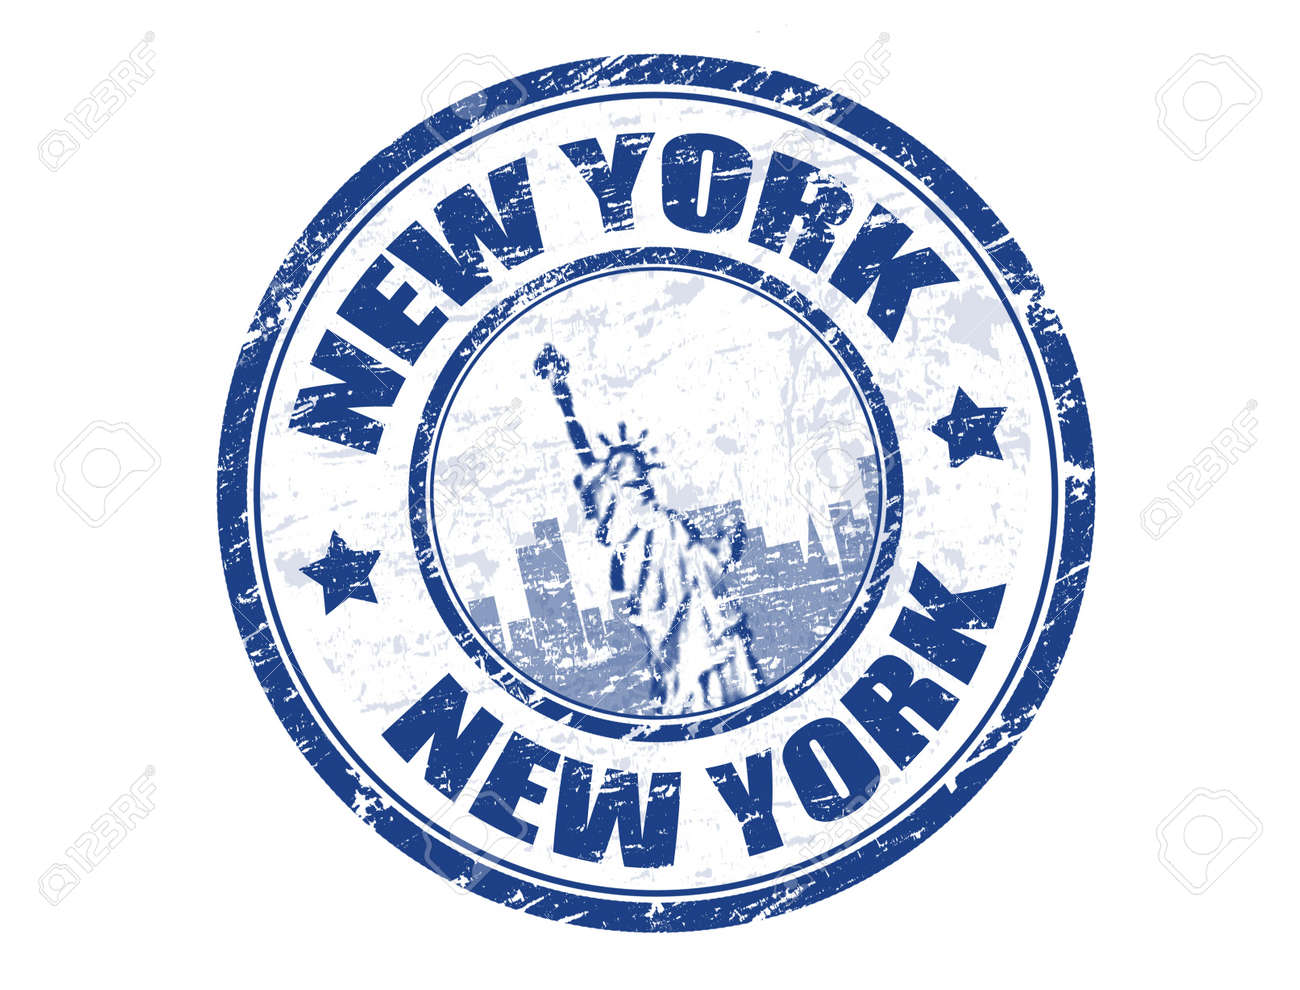 Grunge rubber stamp with Statue of Liberty and the word New York inside illustration Stock Vector - 11536112